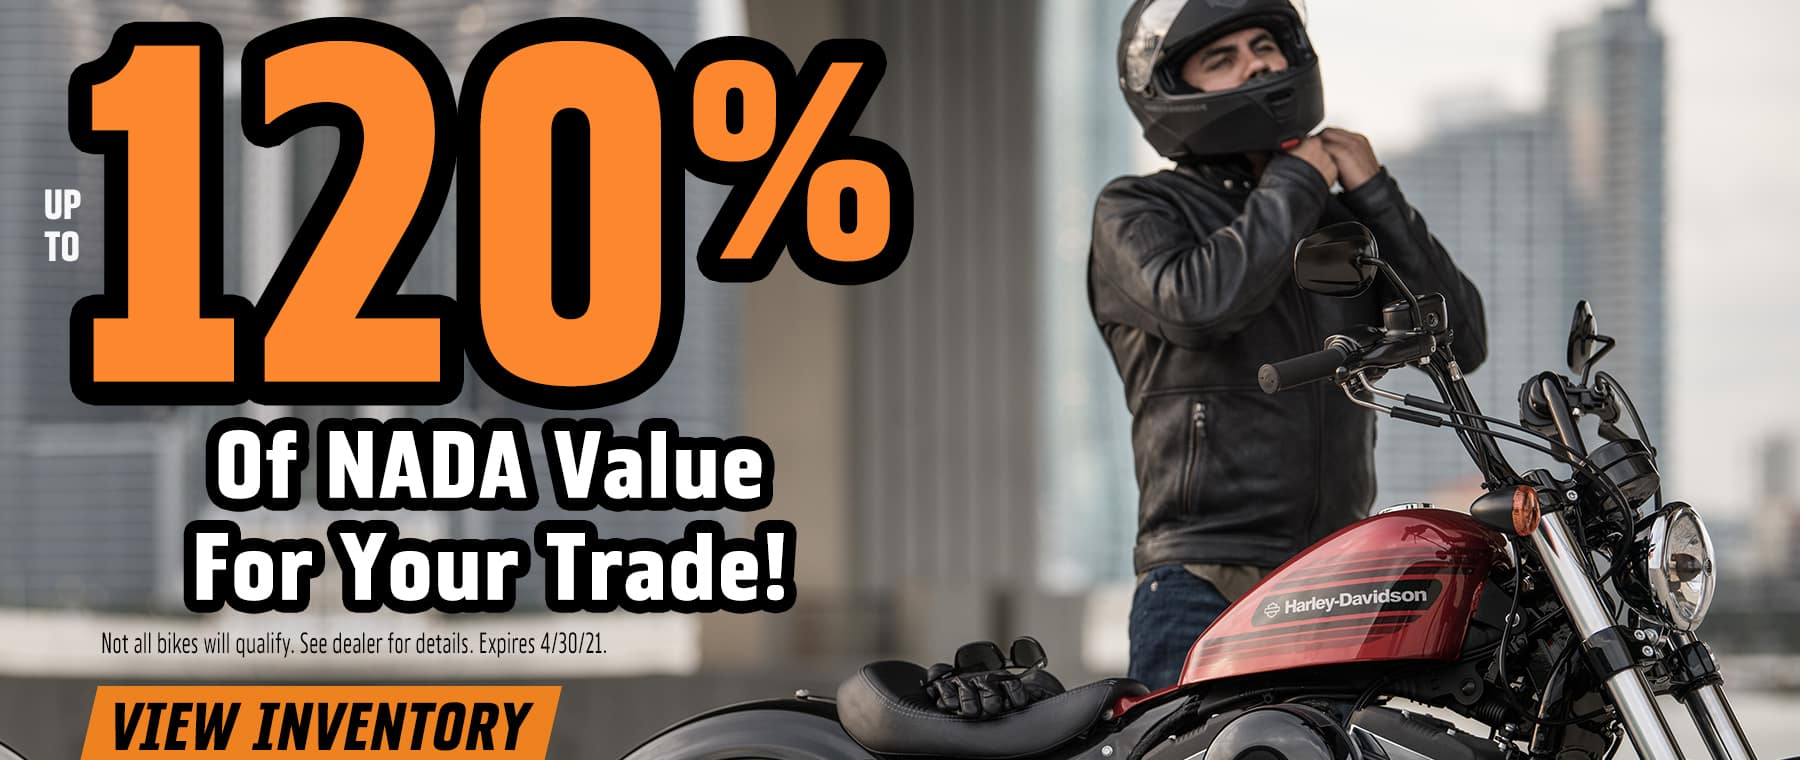 up to 120% of NADA value for your trade